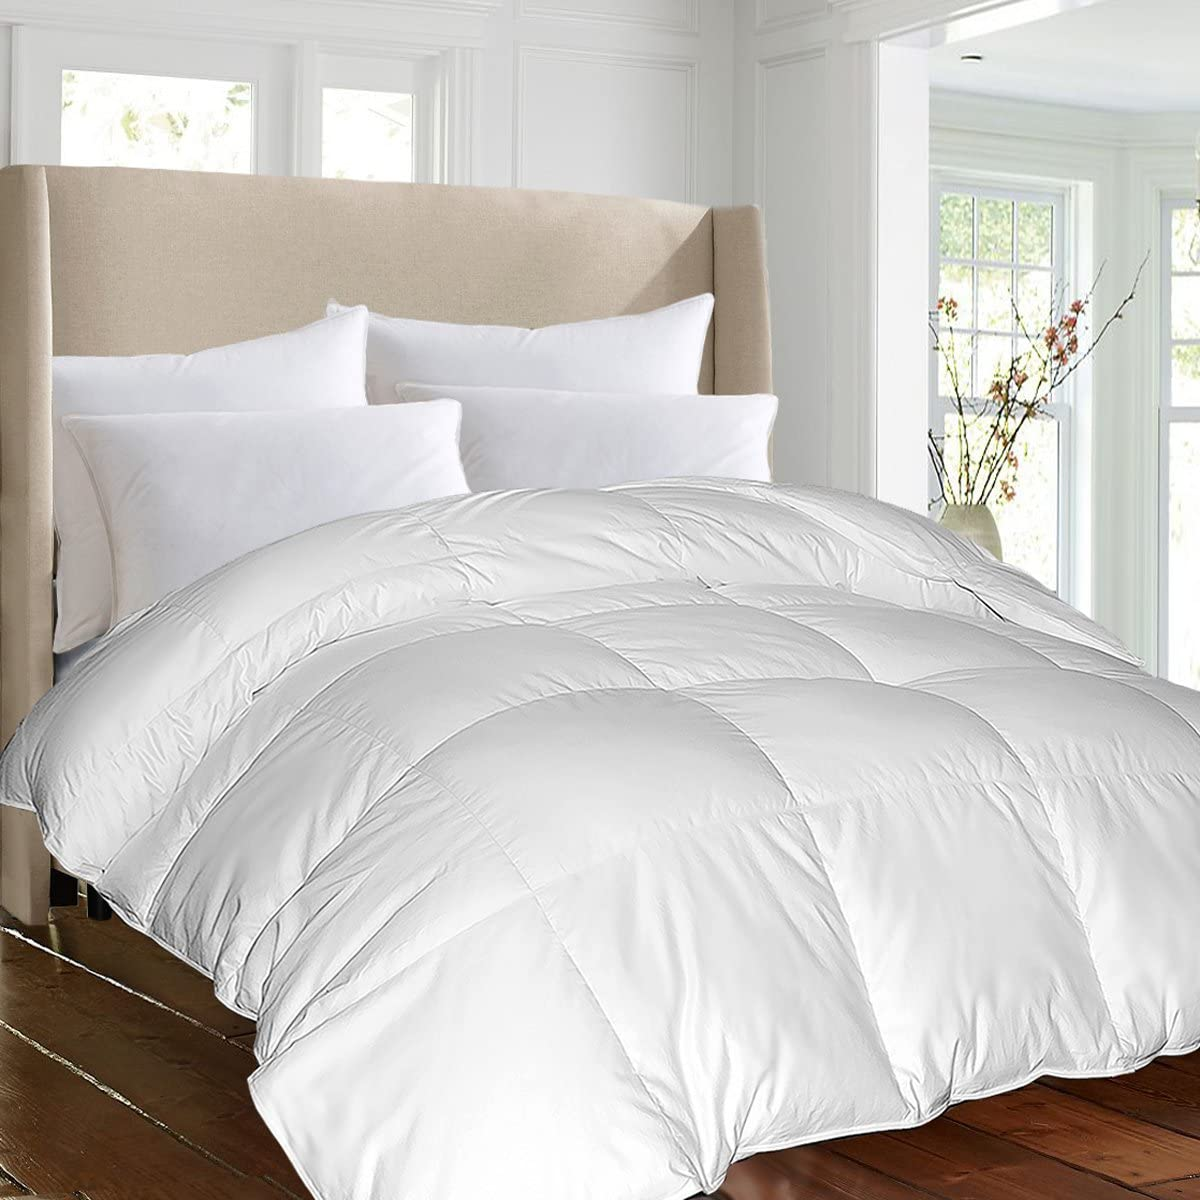 Blue Ridge Home Fashions Luxury 1000 Thread Count Pima Cotton Down Alternative Comforter - Year Round, All Season Cover, King, White